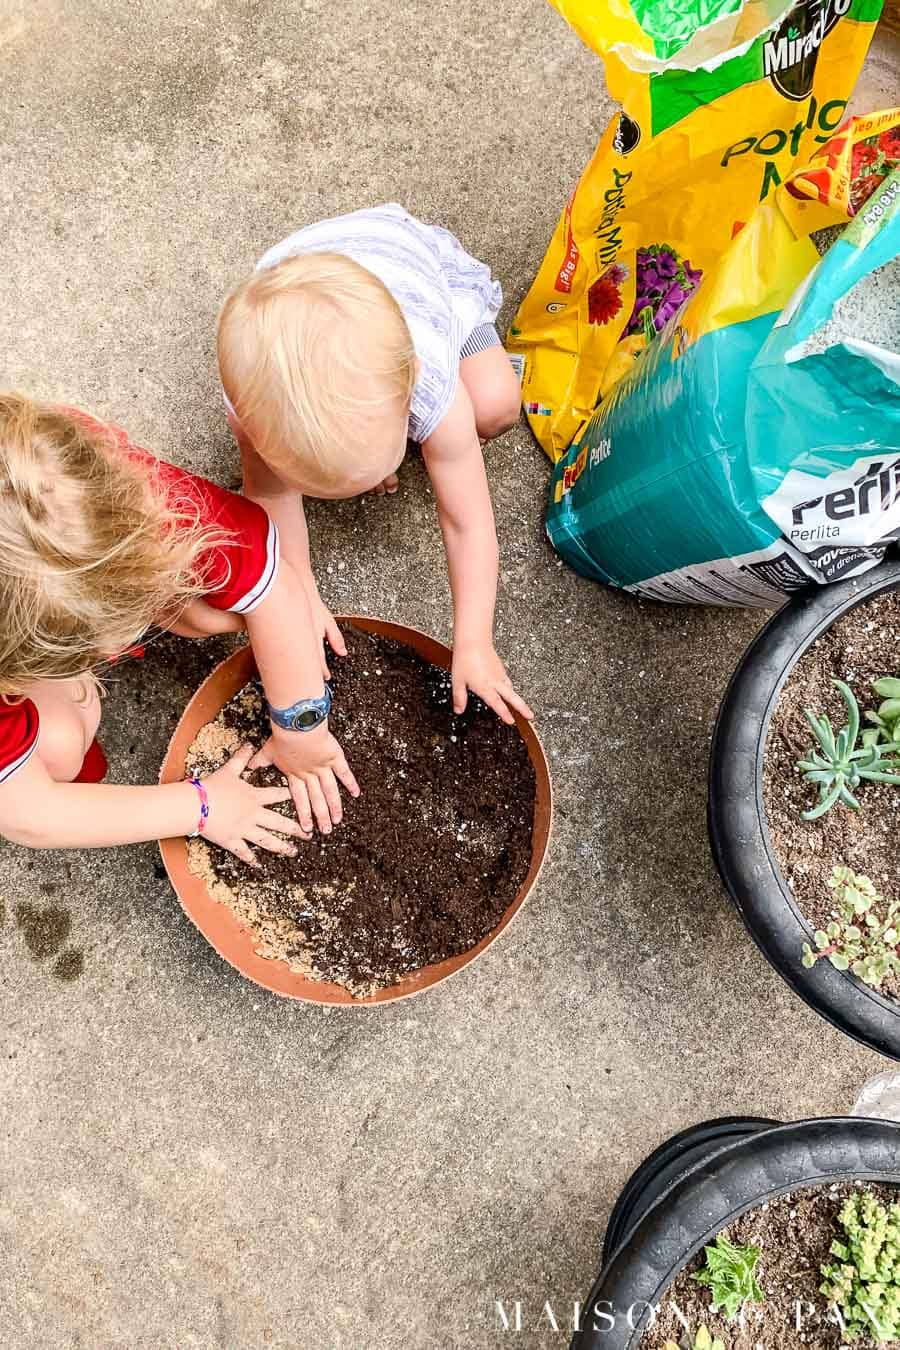 girls mixing potting soil for succulents | Maison de Pax